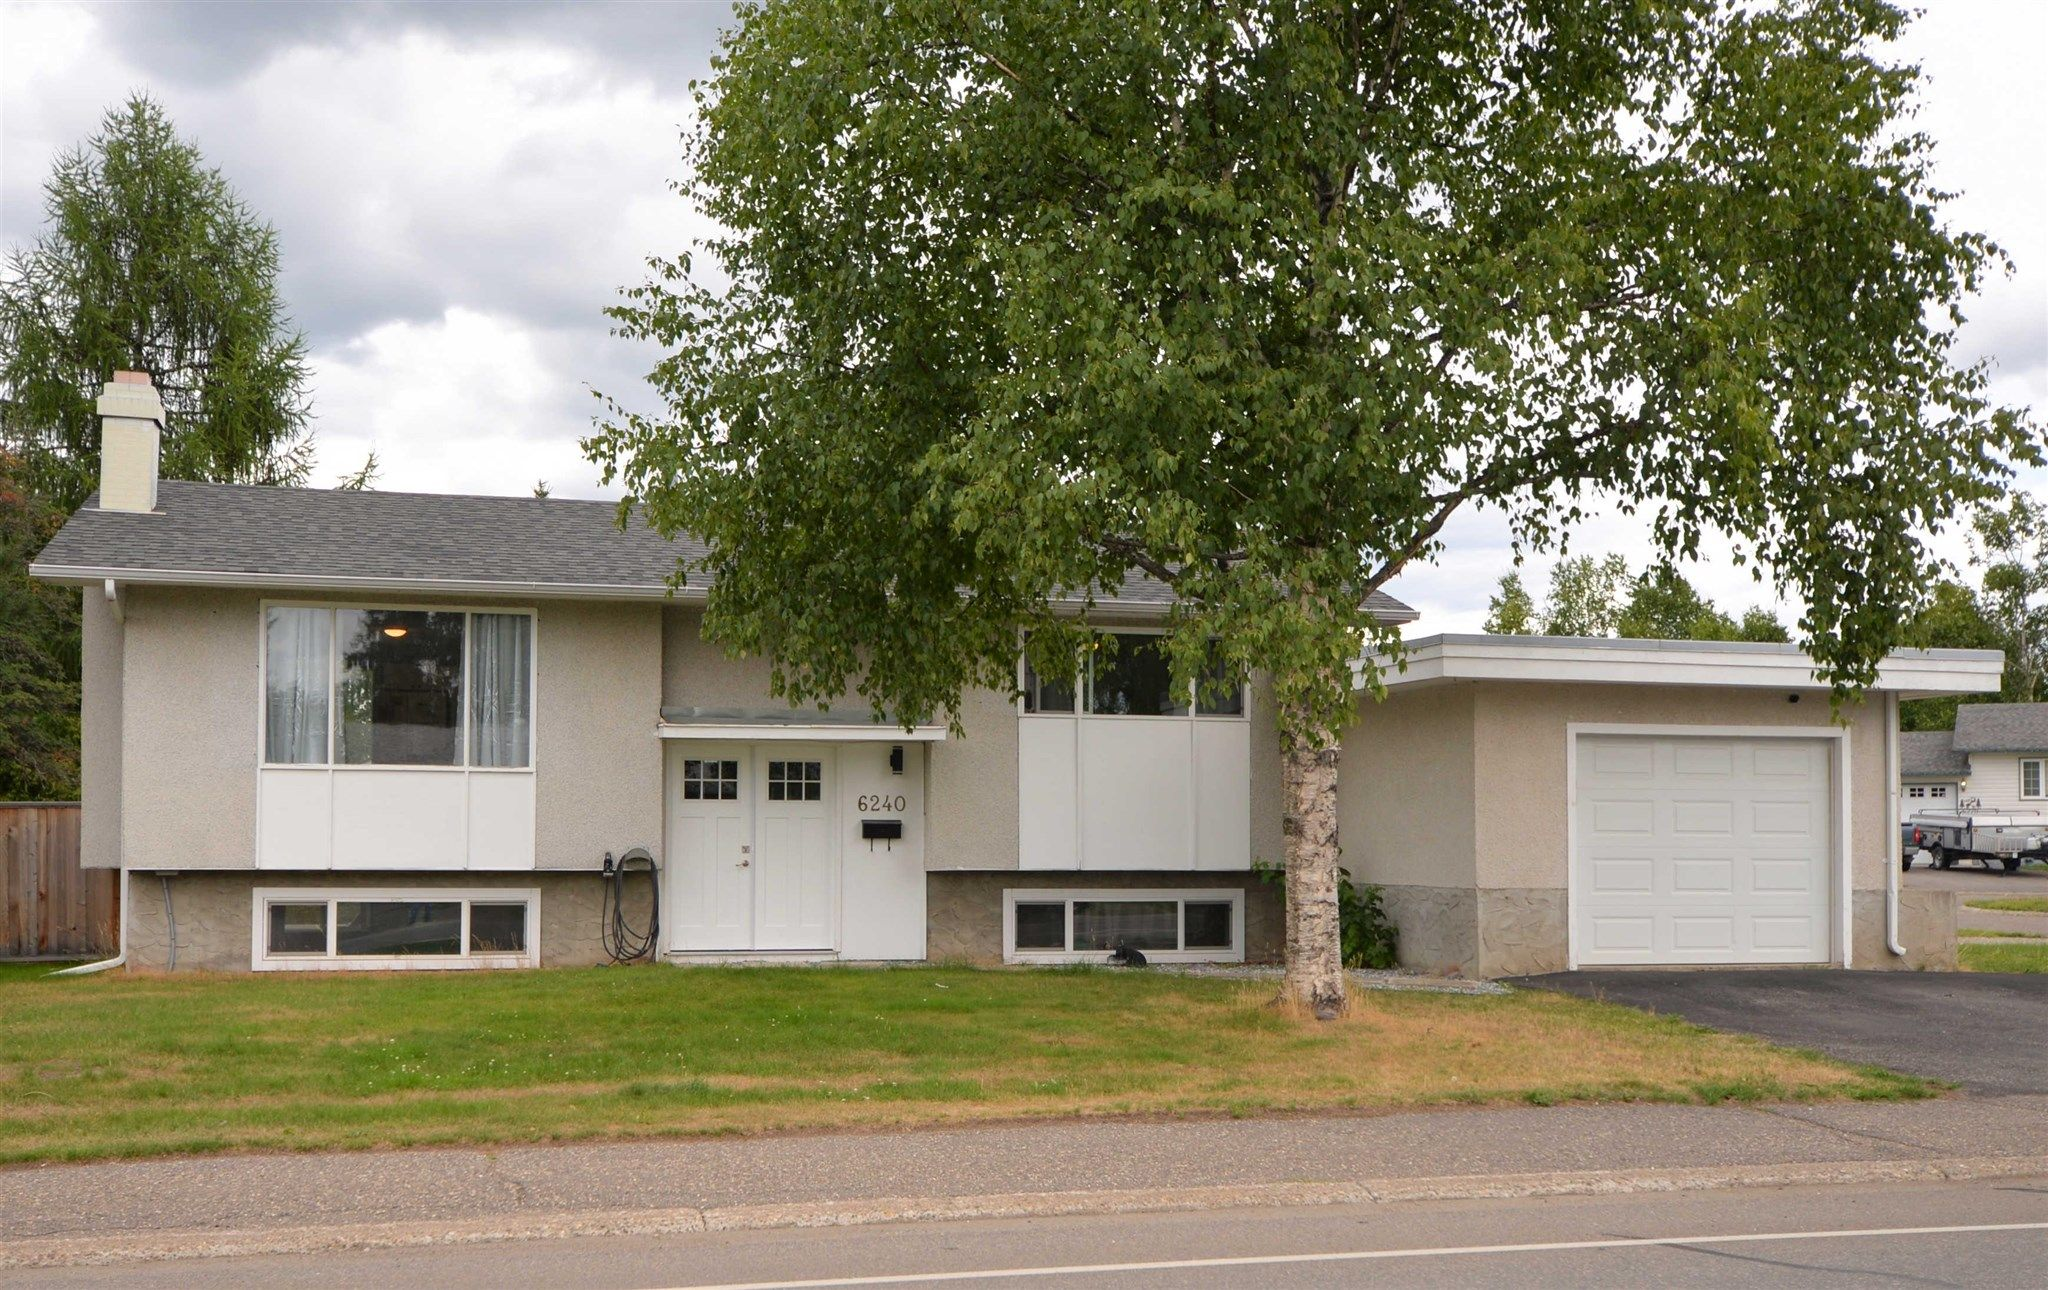 """Main Photo: 6240 SIMON FRASER Avenue in Prince George: Lower College House for sale in """"Lower College"""" (PG City South (Zone 74))  : MLS®# R2608498"""